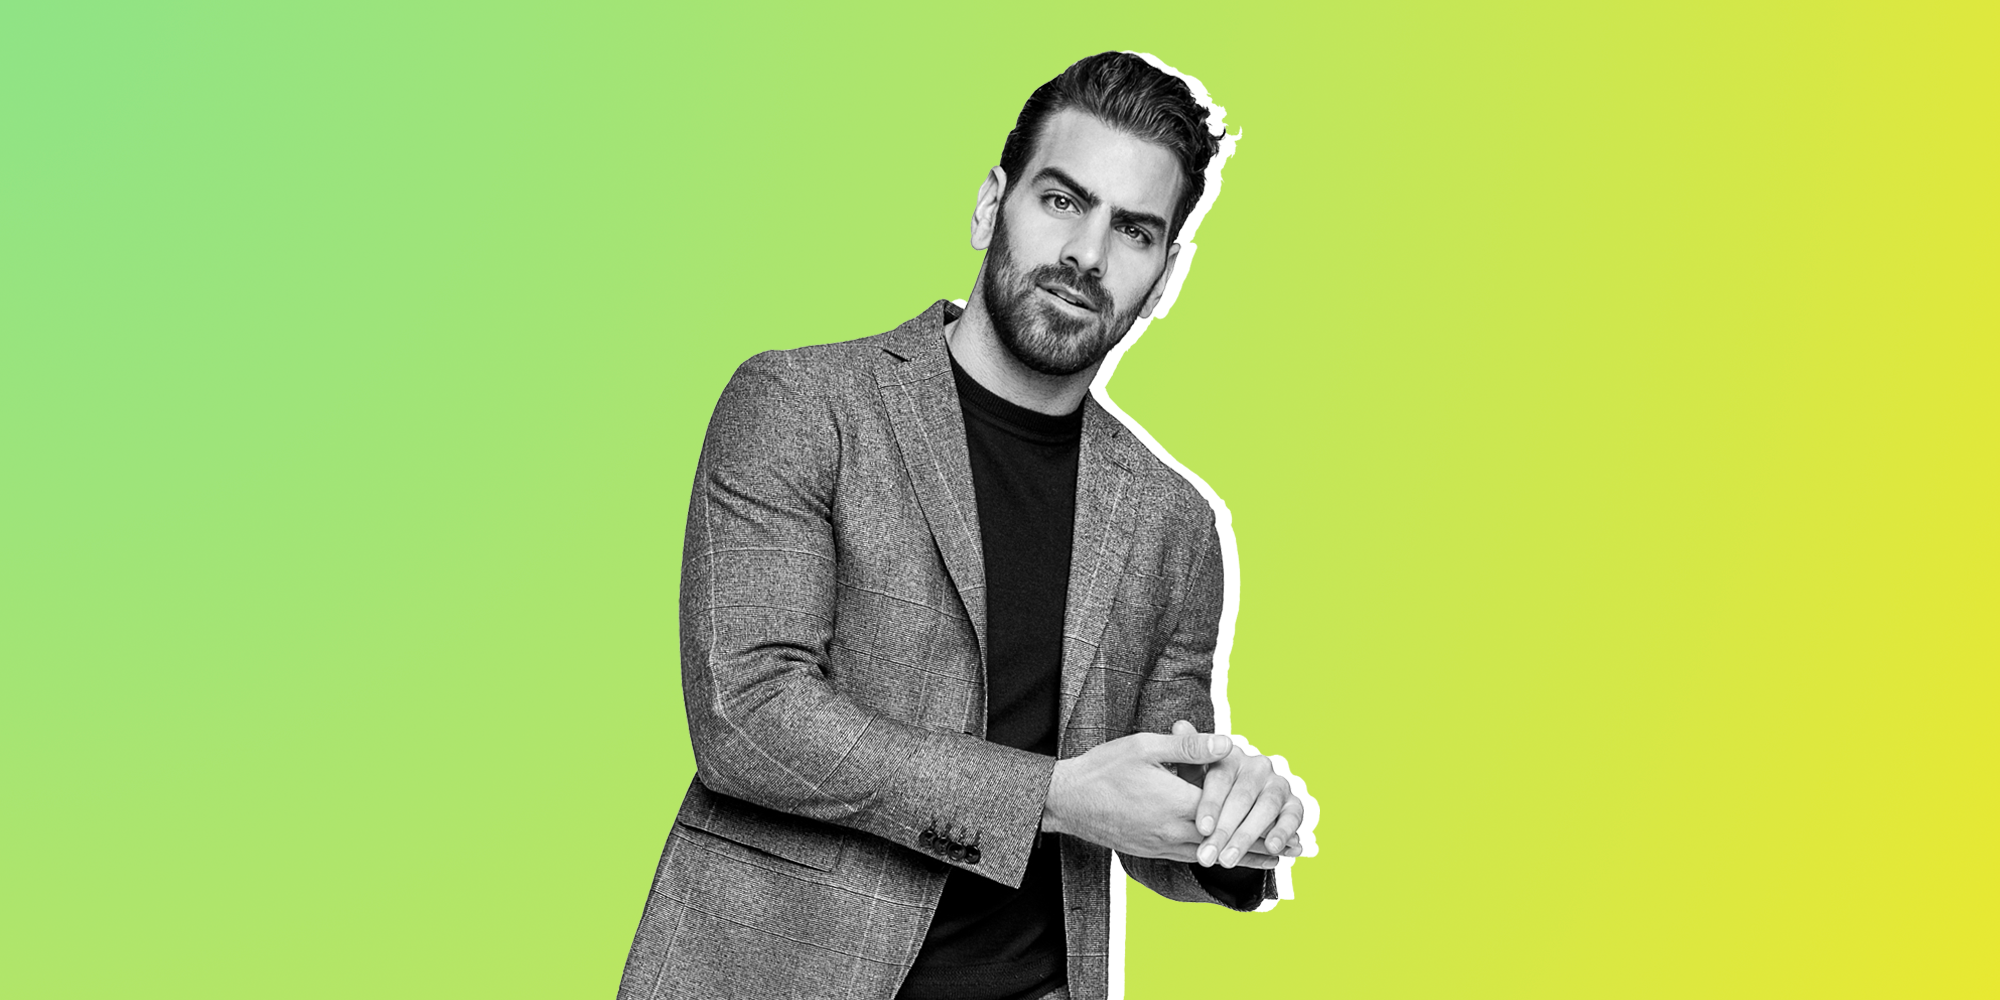 Dancing with the Stars Winner Nyle DiMarco Explains Why Casting Hearing Actors for Deaf Roles Is Problematic